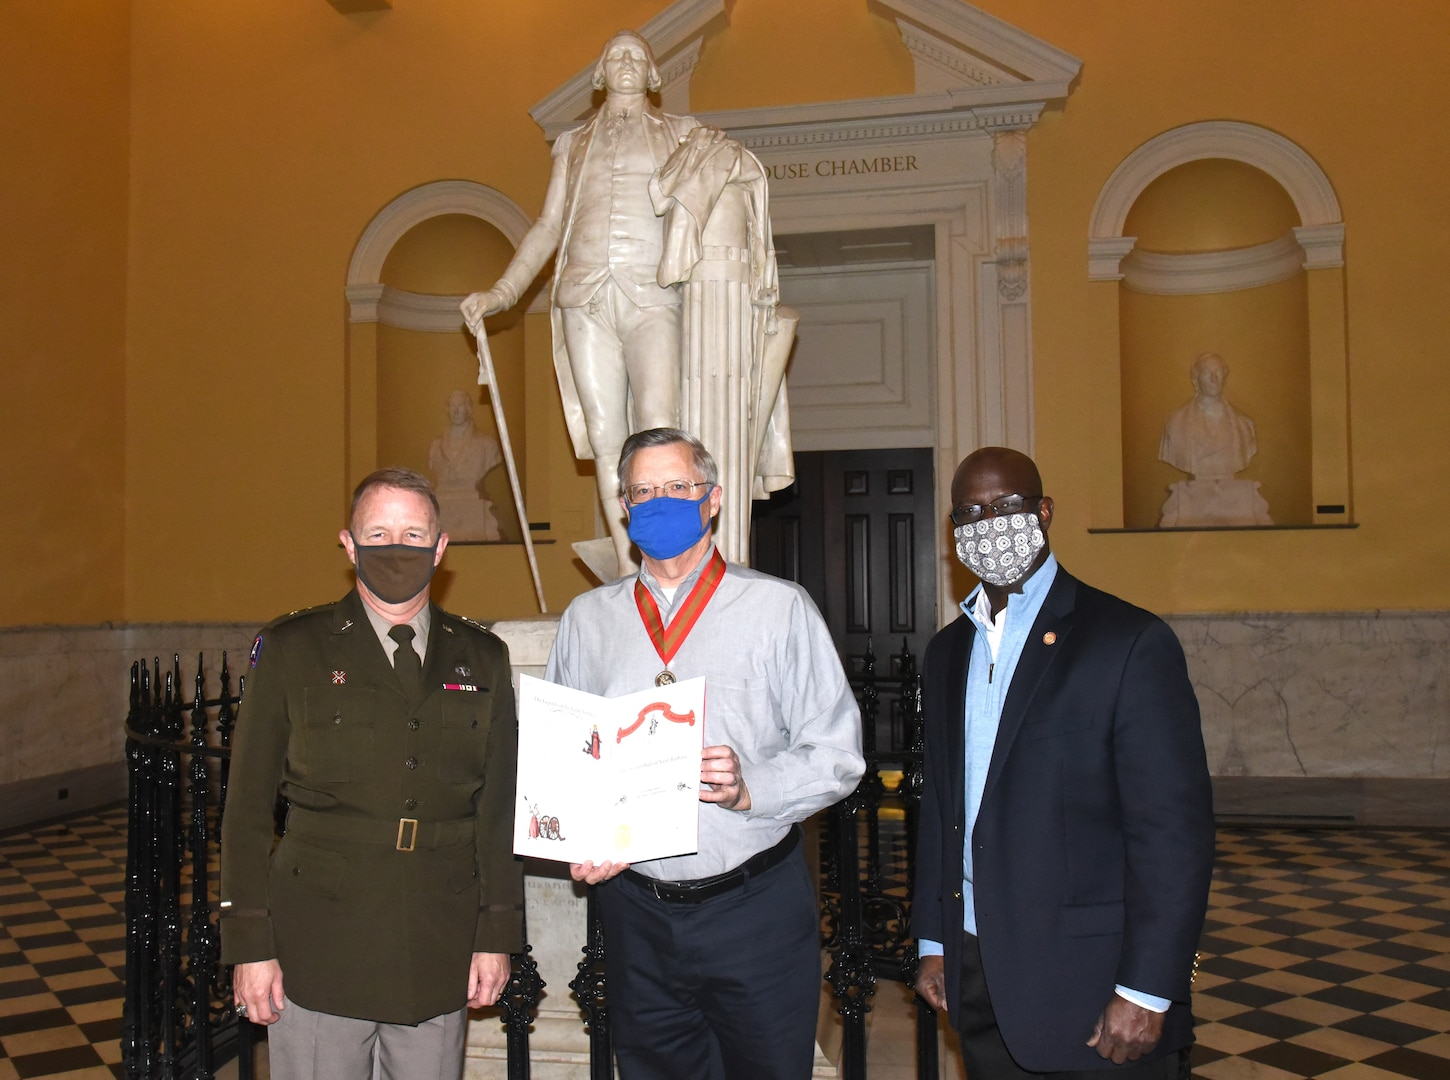 Maj. Gen. Timothy P. Williams, the Adjutant General of Virginia, presents the Ancient Order of St. Barbara to retired Col. Mike Coleman during a ceremony at the Capitol of Virginia Dec. 14, 2020, in Richmond, Virginia.